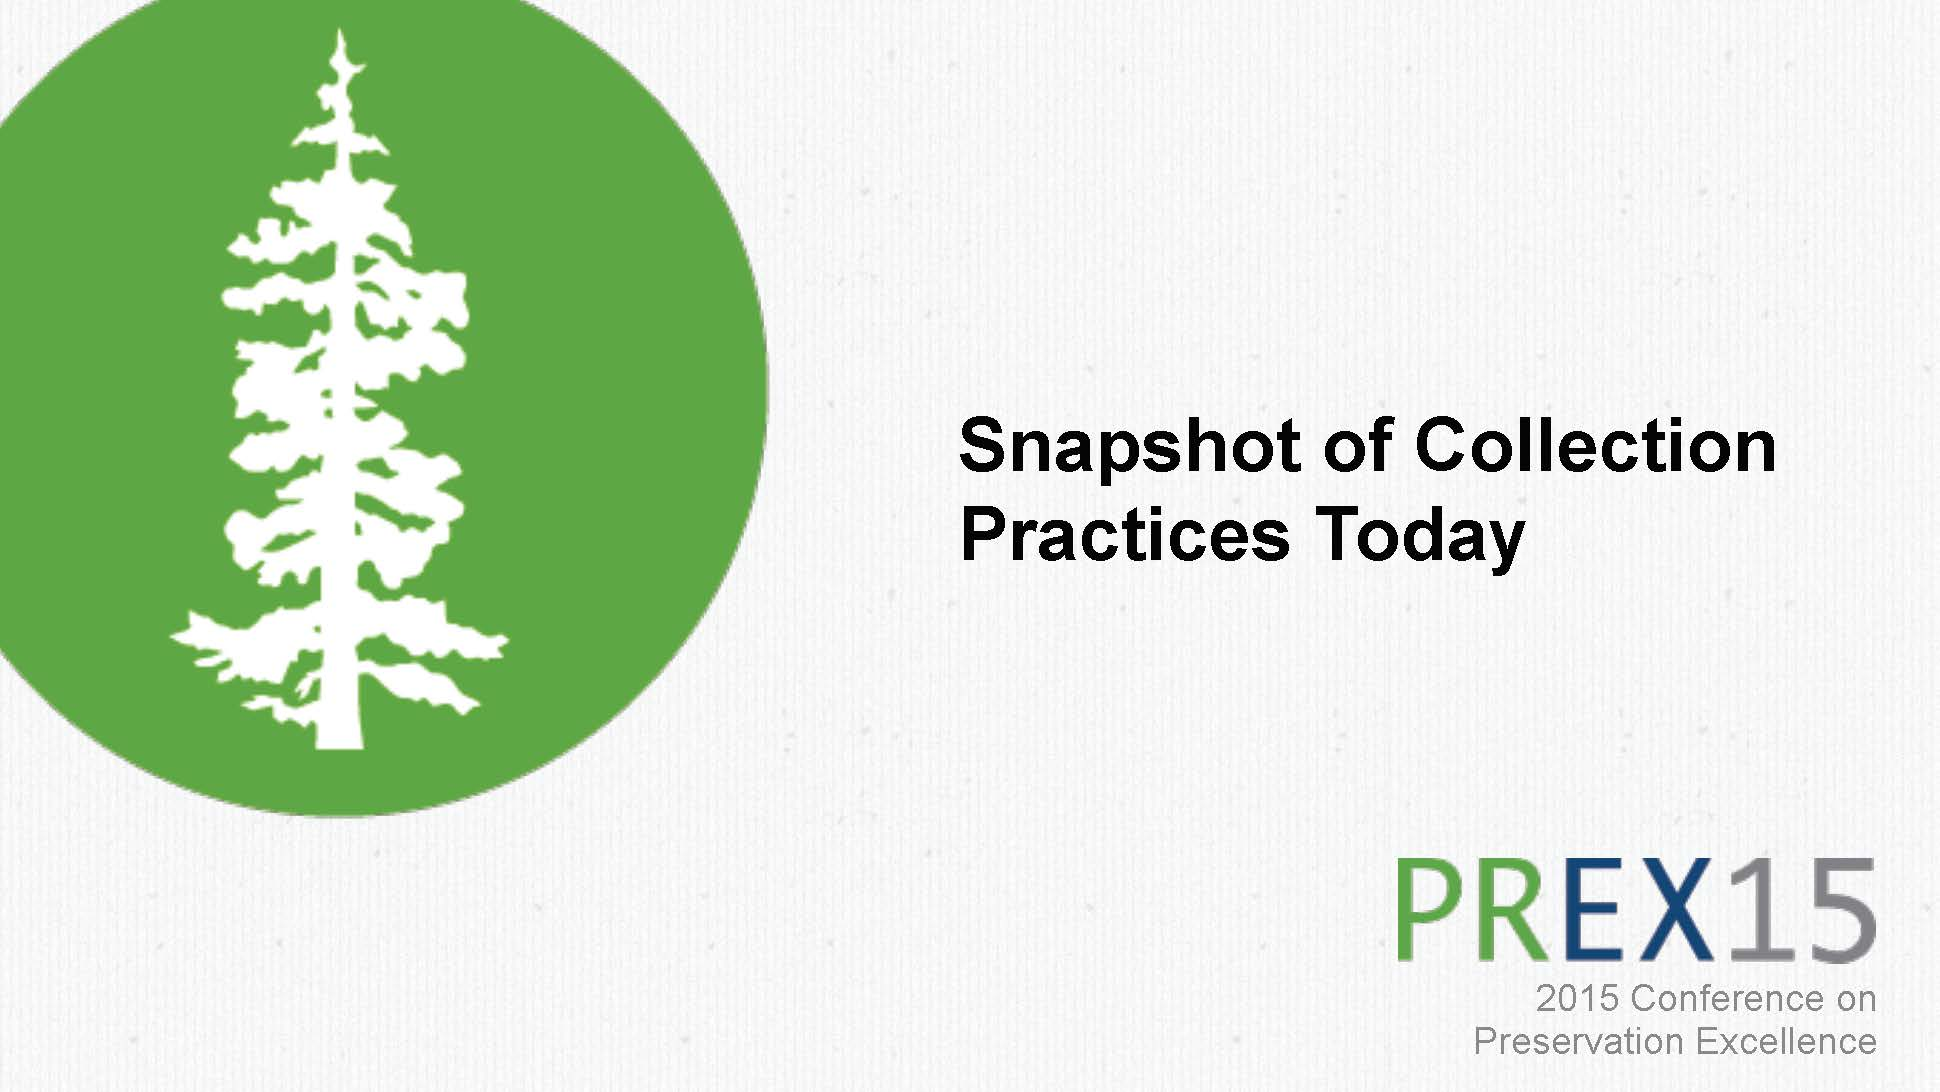 Snapshot of Collection Practices Today